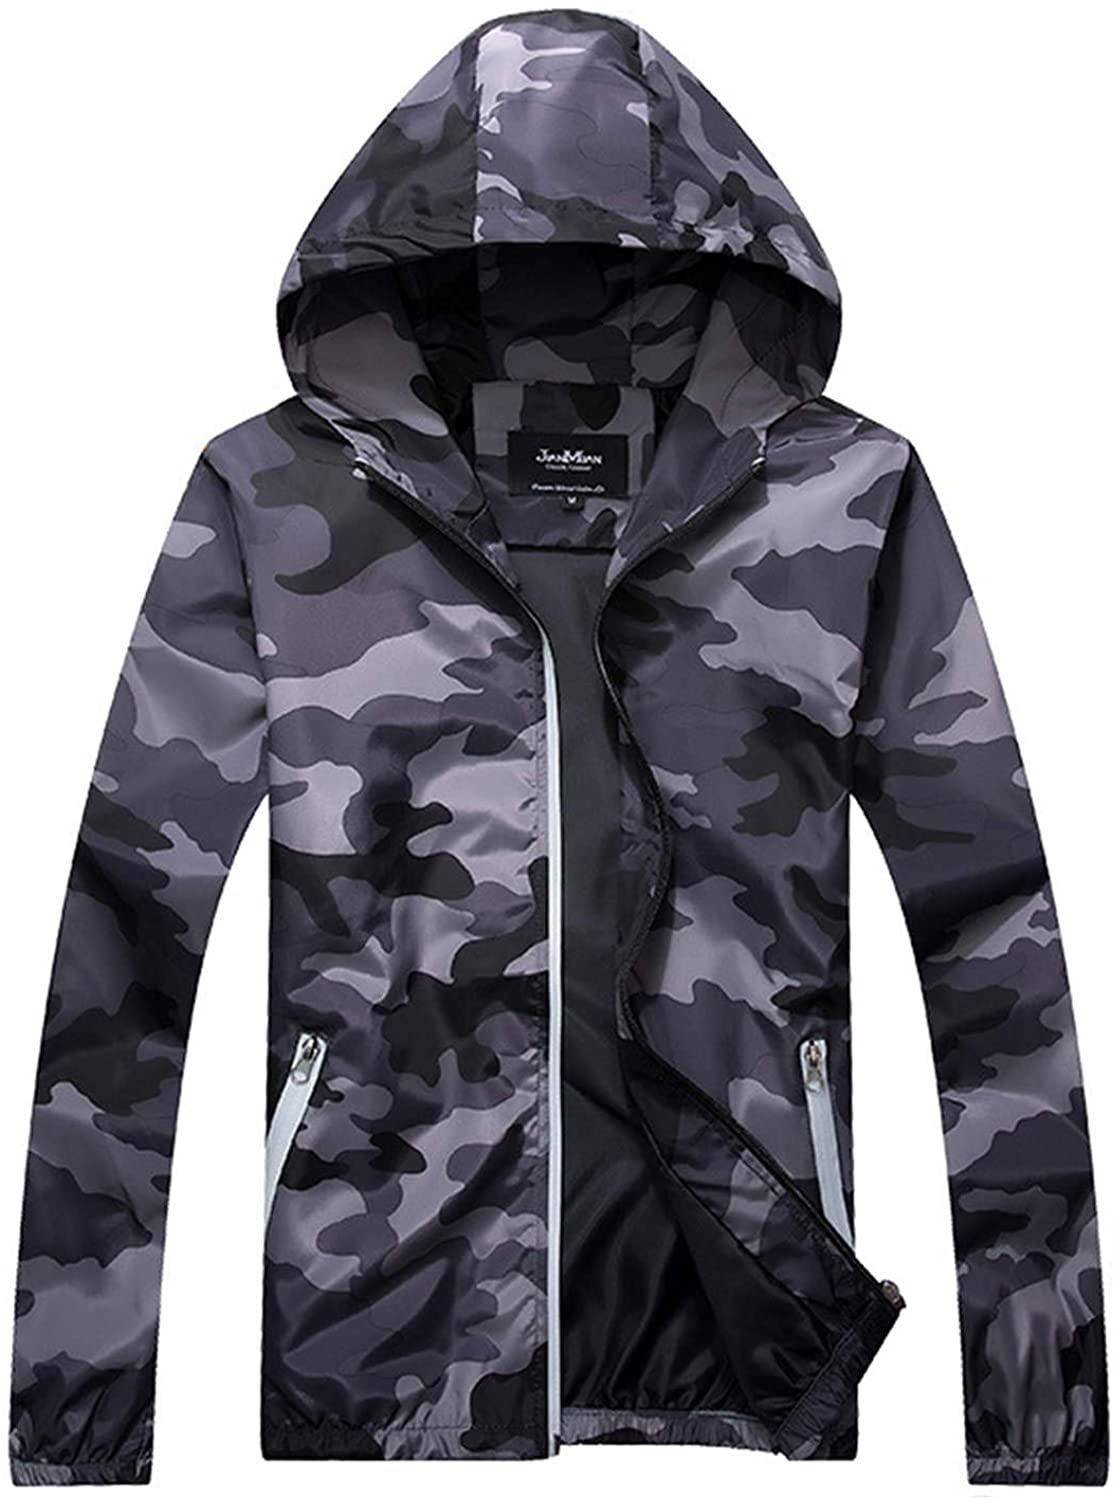 Soluo Men's Outdoor Waterproof Soft Shell Hooded Military Tactical Jacket Outwear Overcoats